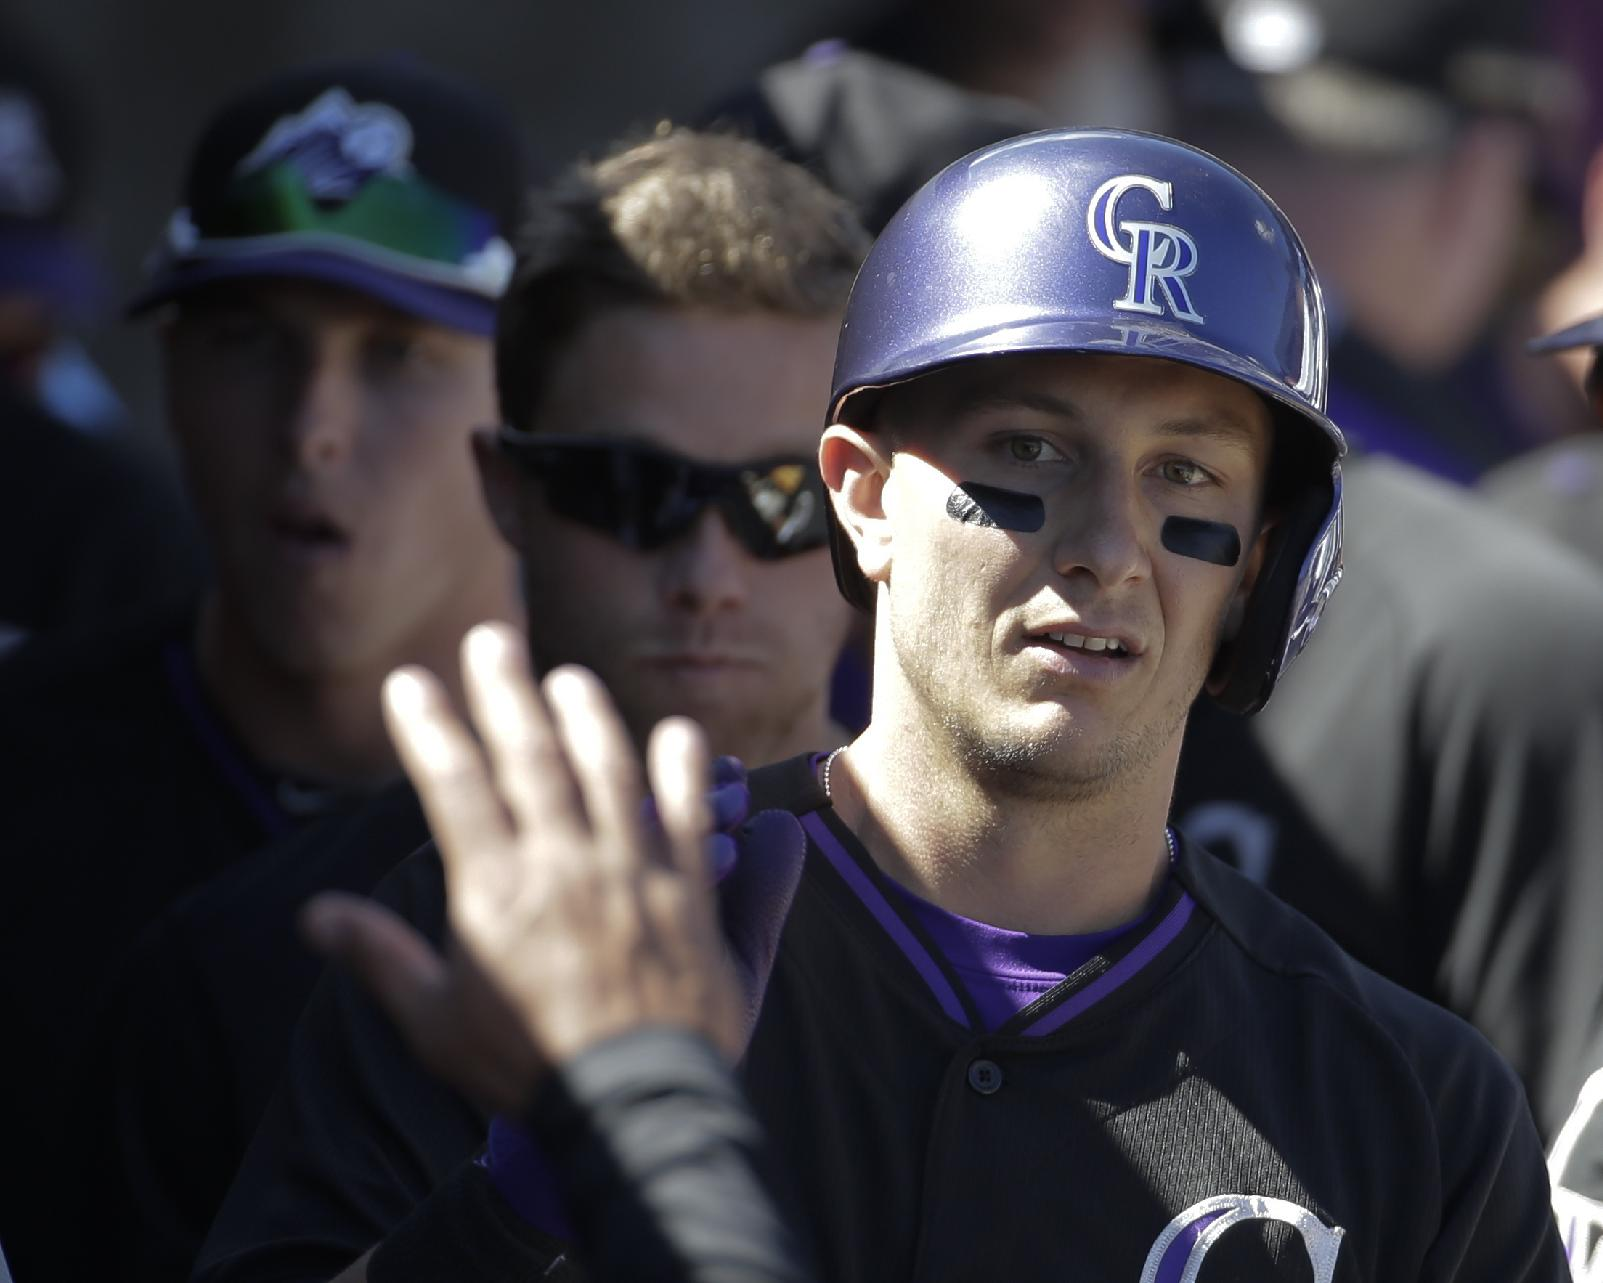 Tulowitzki hit by pitch, suffers bruised calf